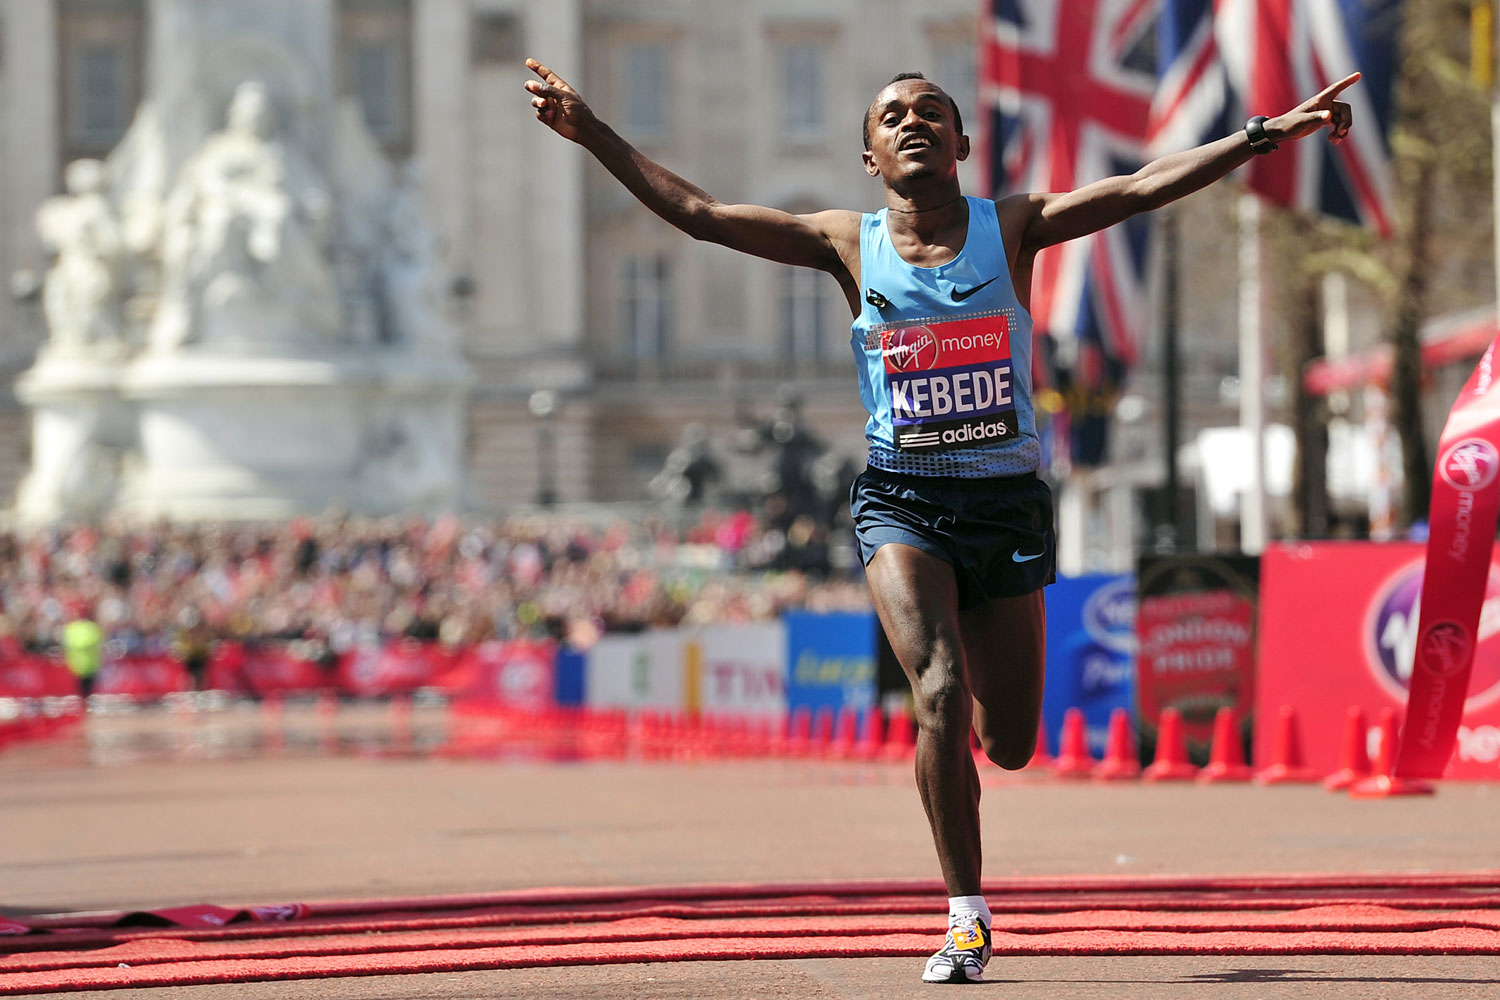 Tsegaye Kebede crosses the finish line to win the men's race in the 2013 London Marathon.